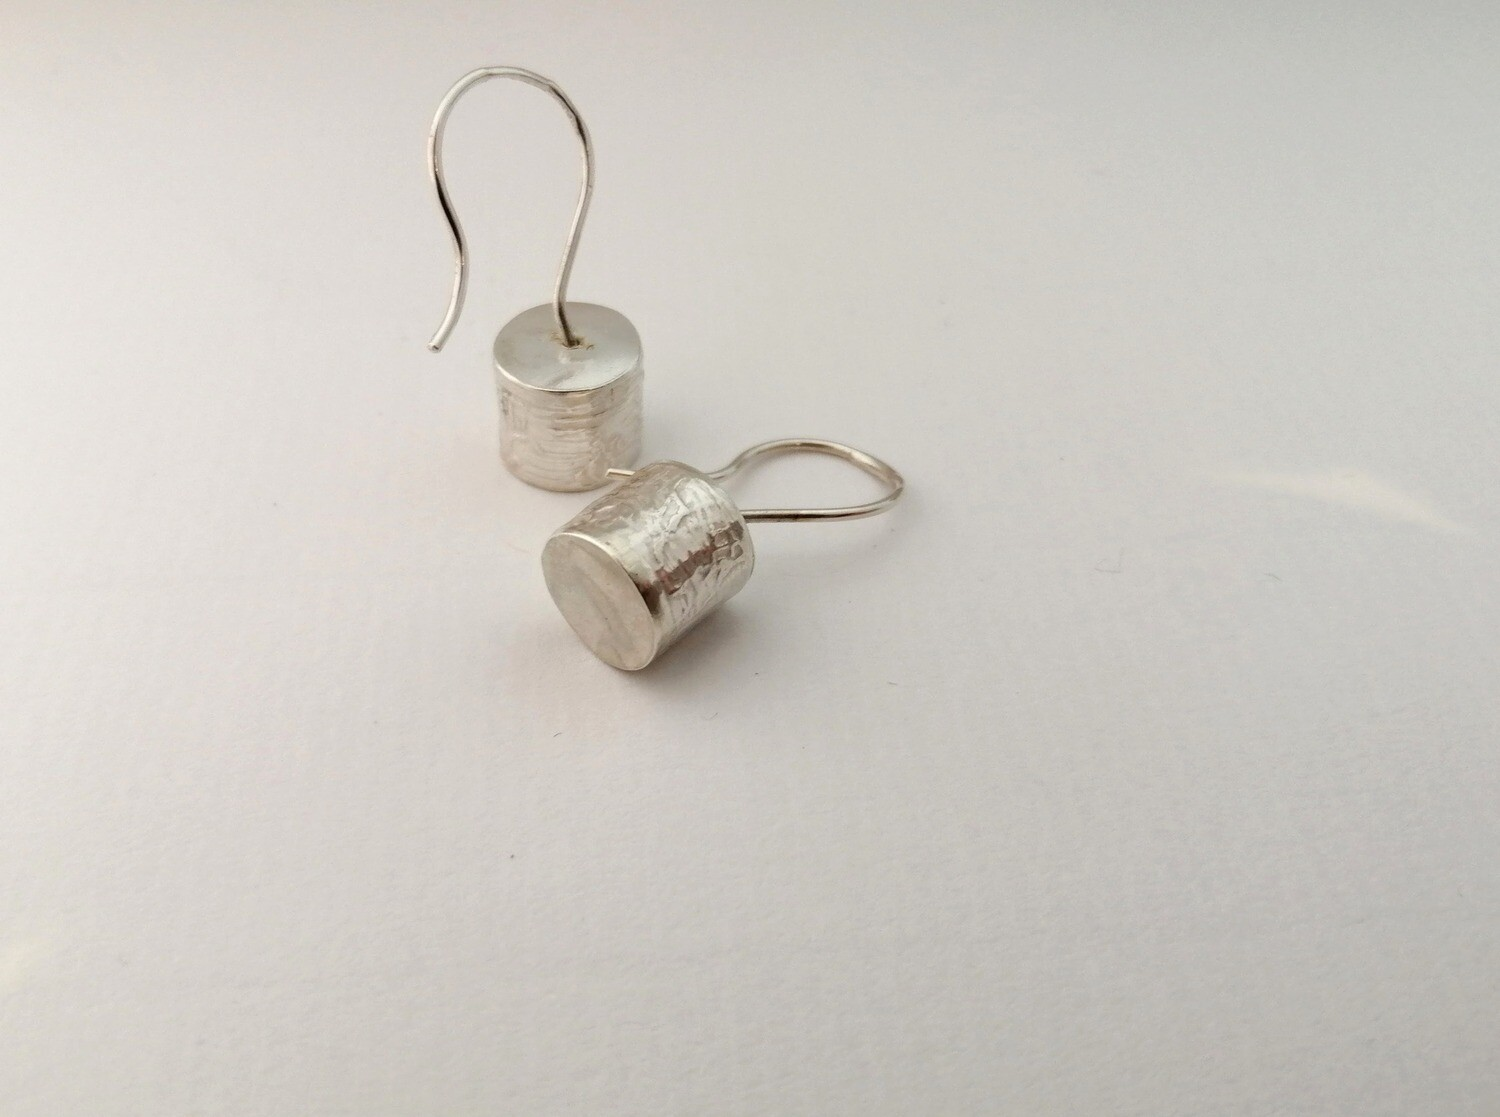 Drum hook ear rings